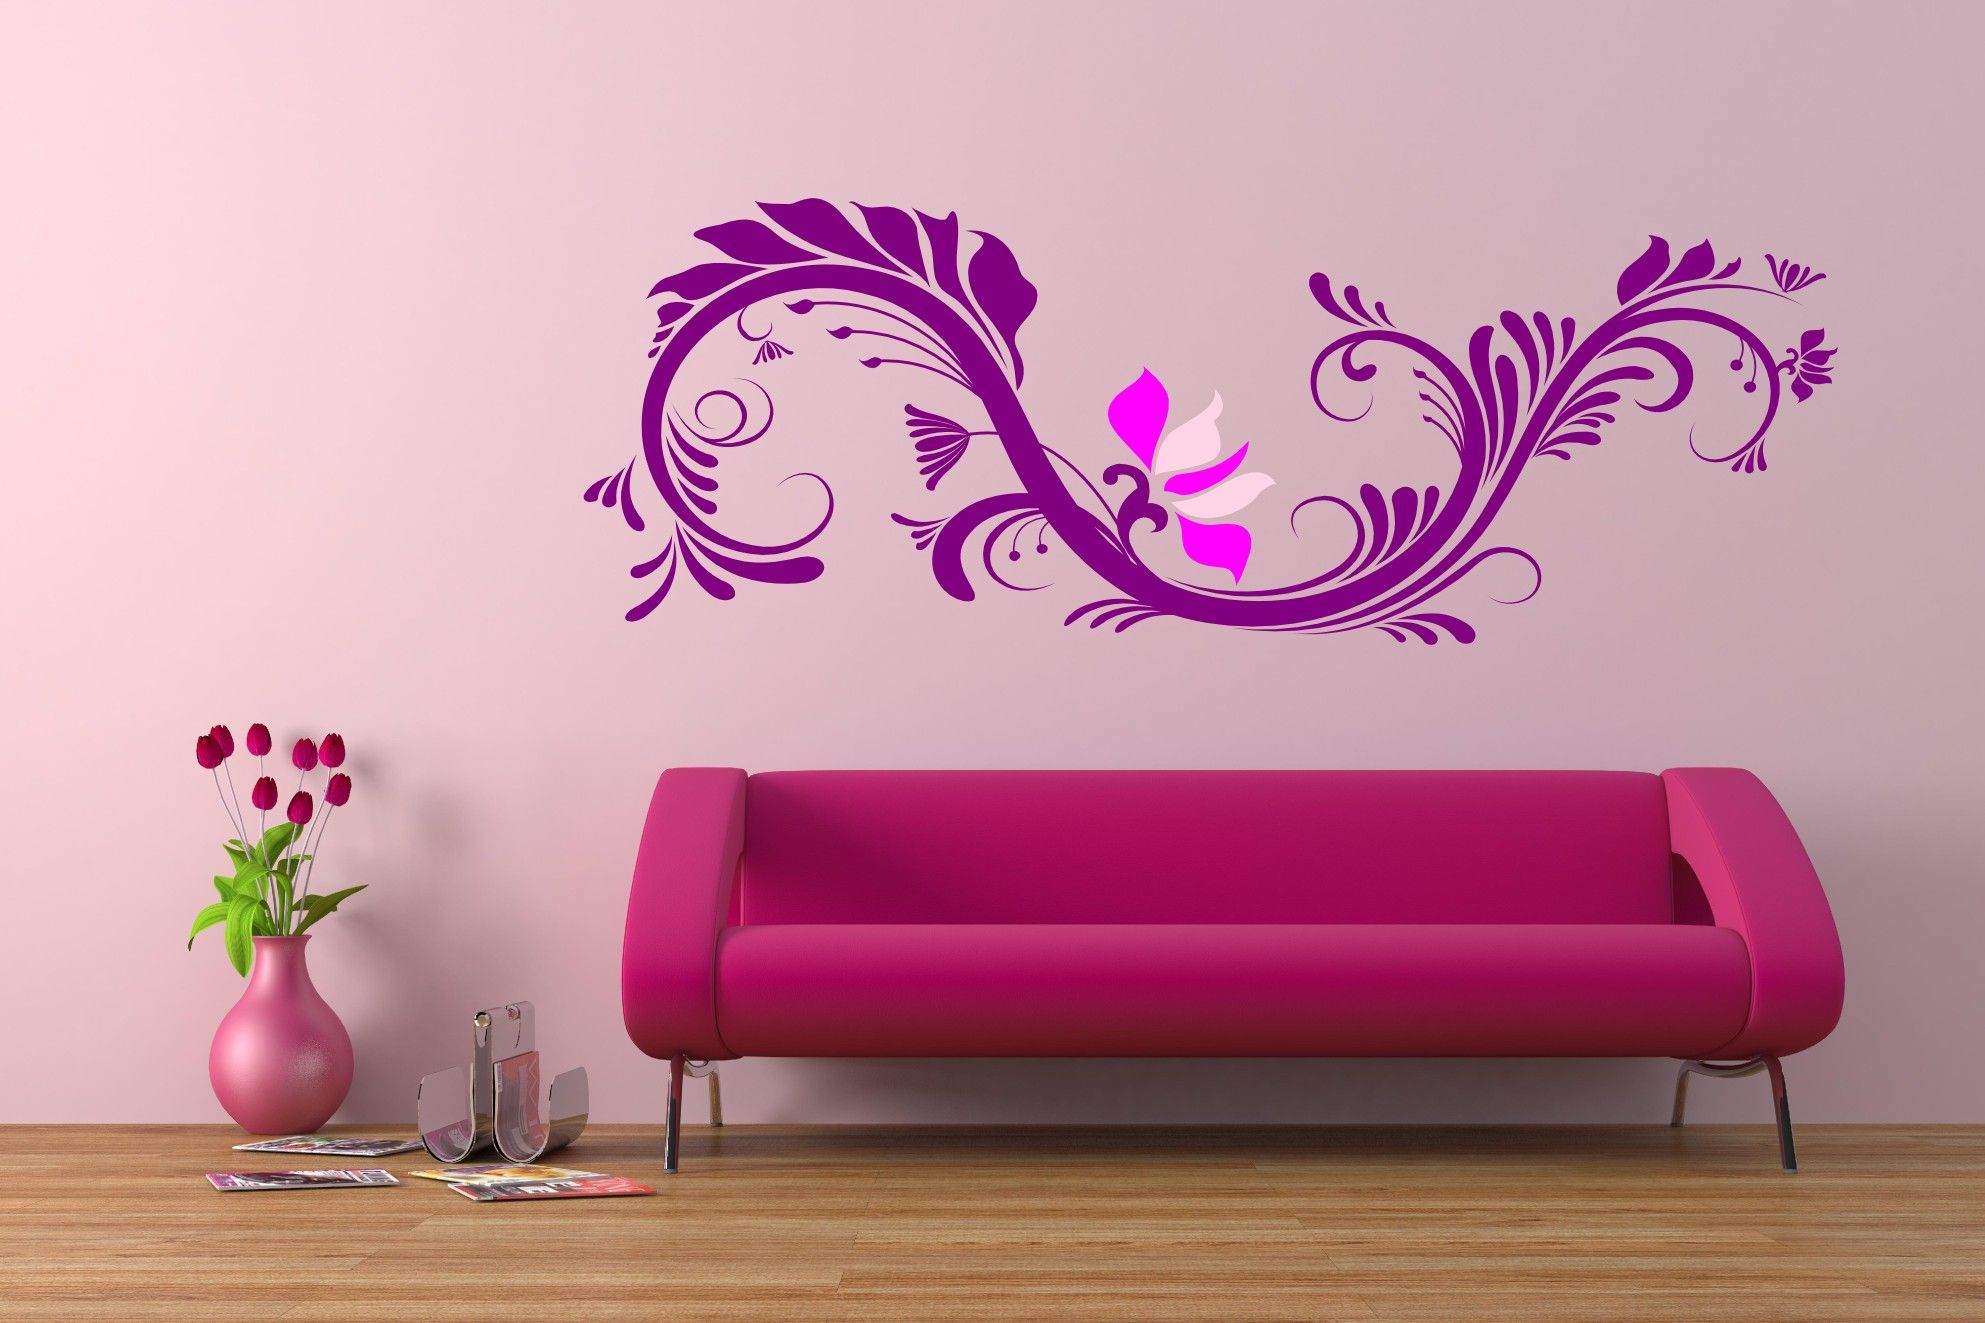 Painting walls ideas wall decals - Living Room Wall Decor Interior Designs